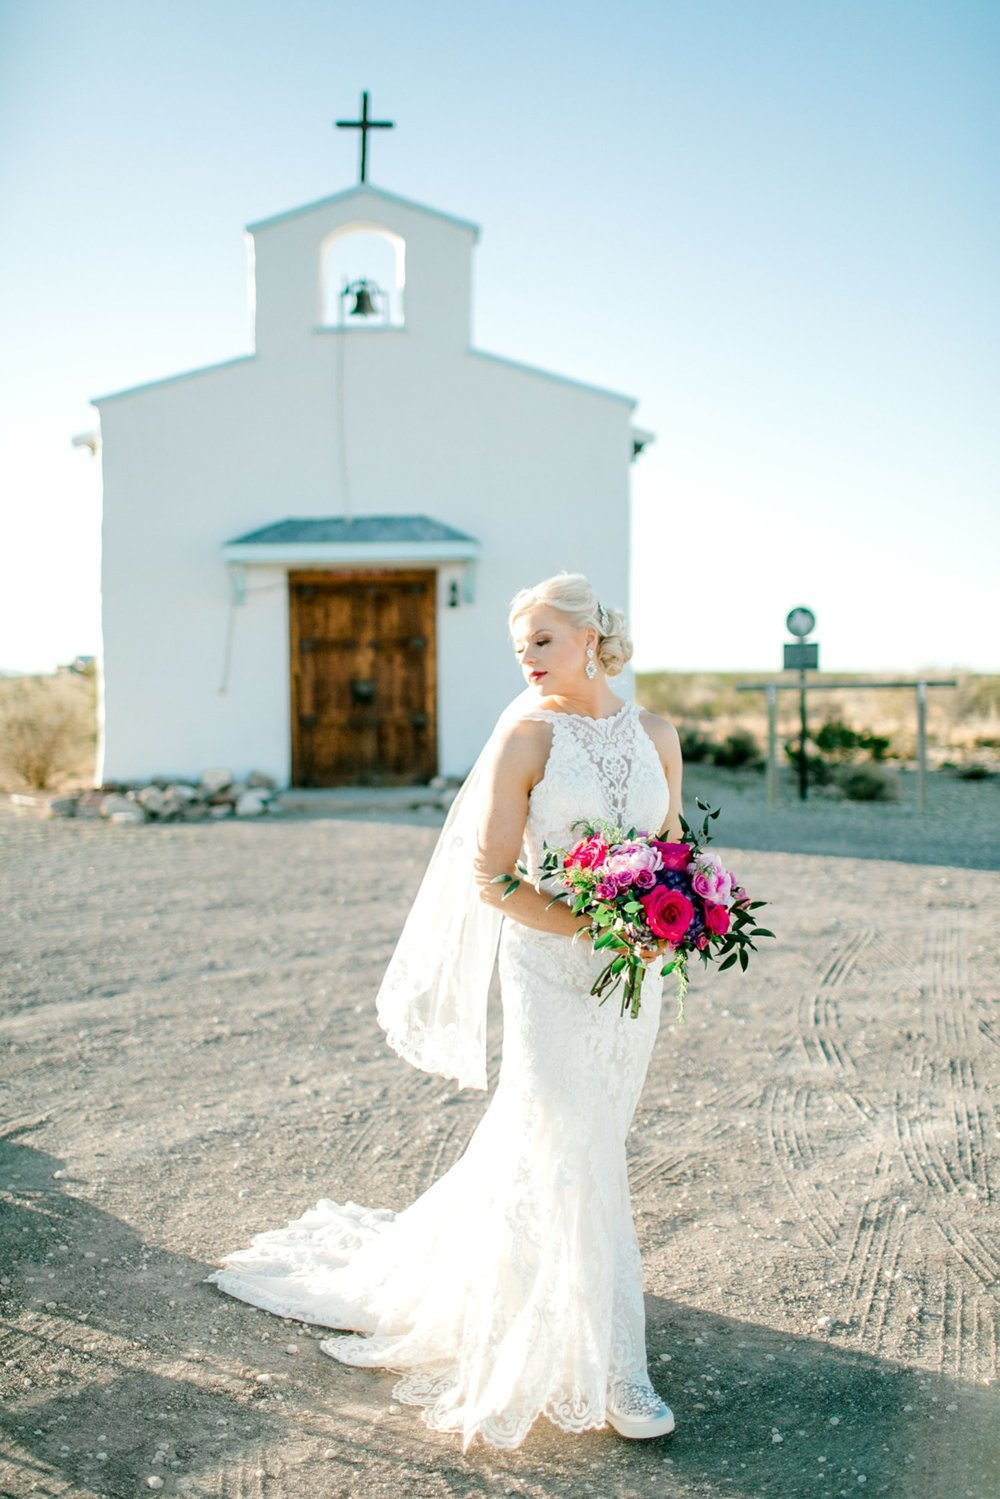 Jenna-evans-bridals-balmorhea-texas-fort-davis-wedding-photographer-lubbock-photographer__0042.jpg